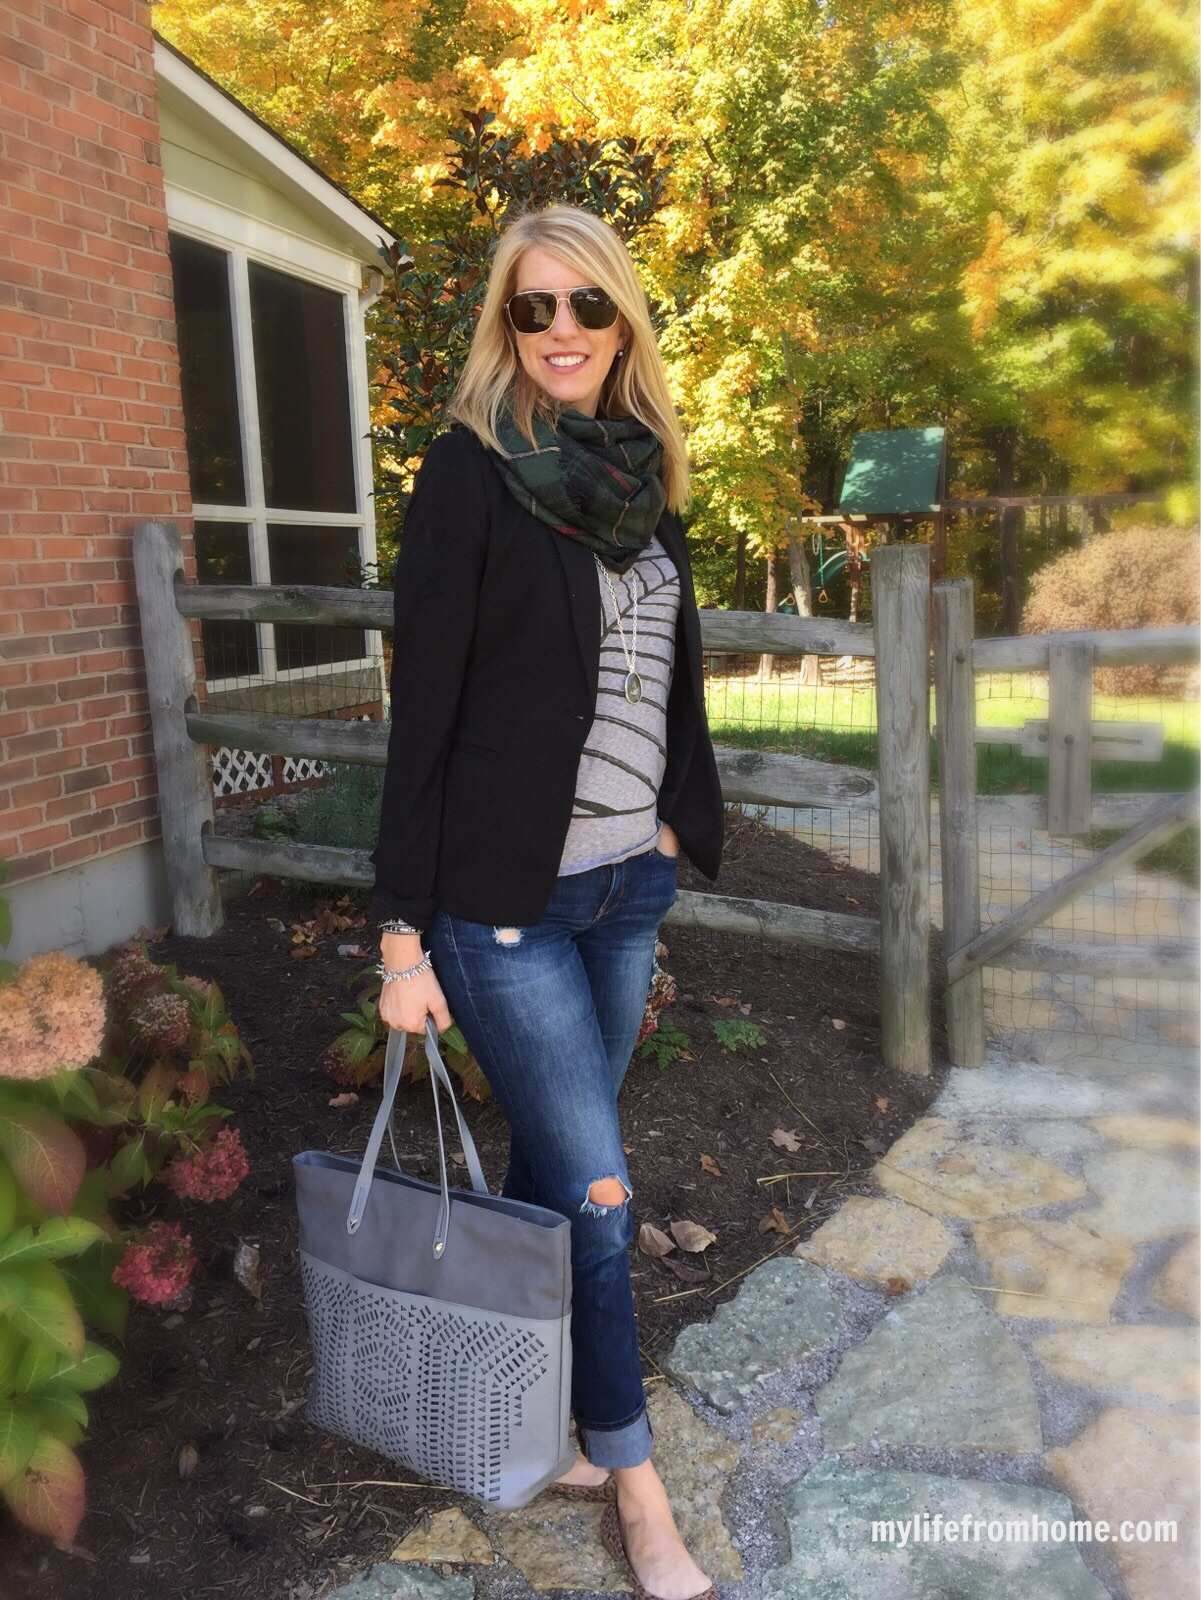 Everyday Style: Casual Chic